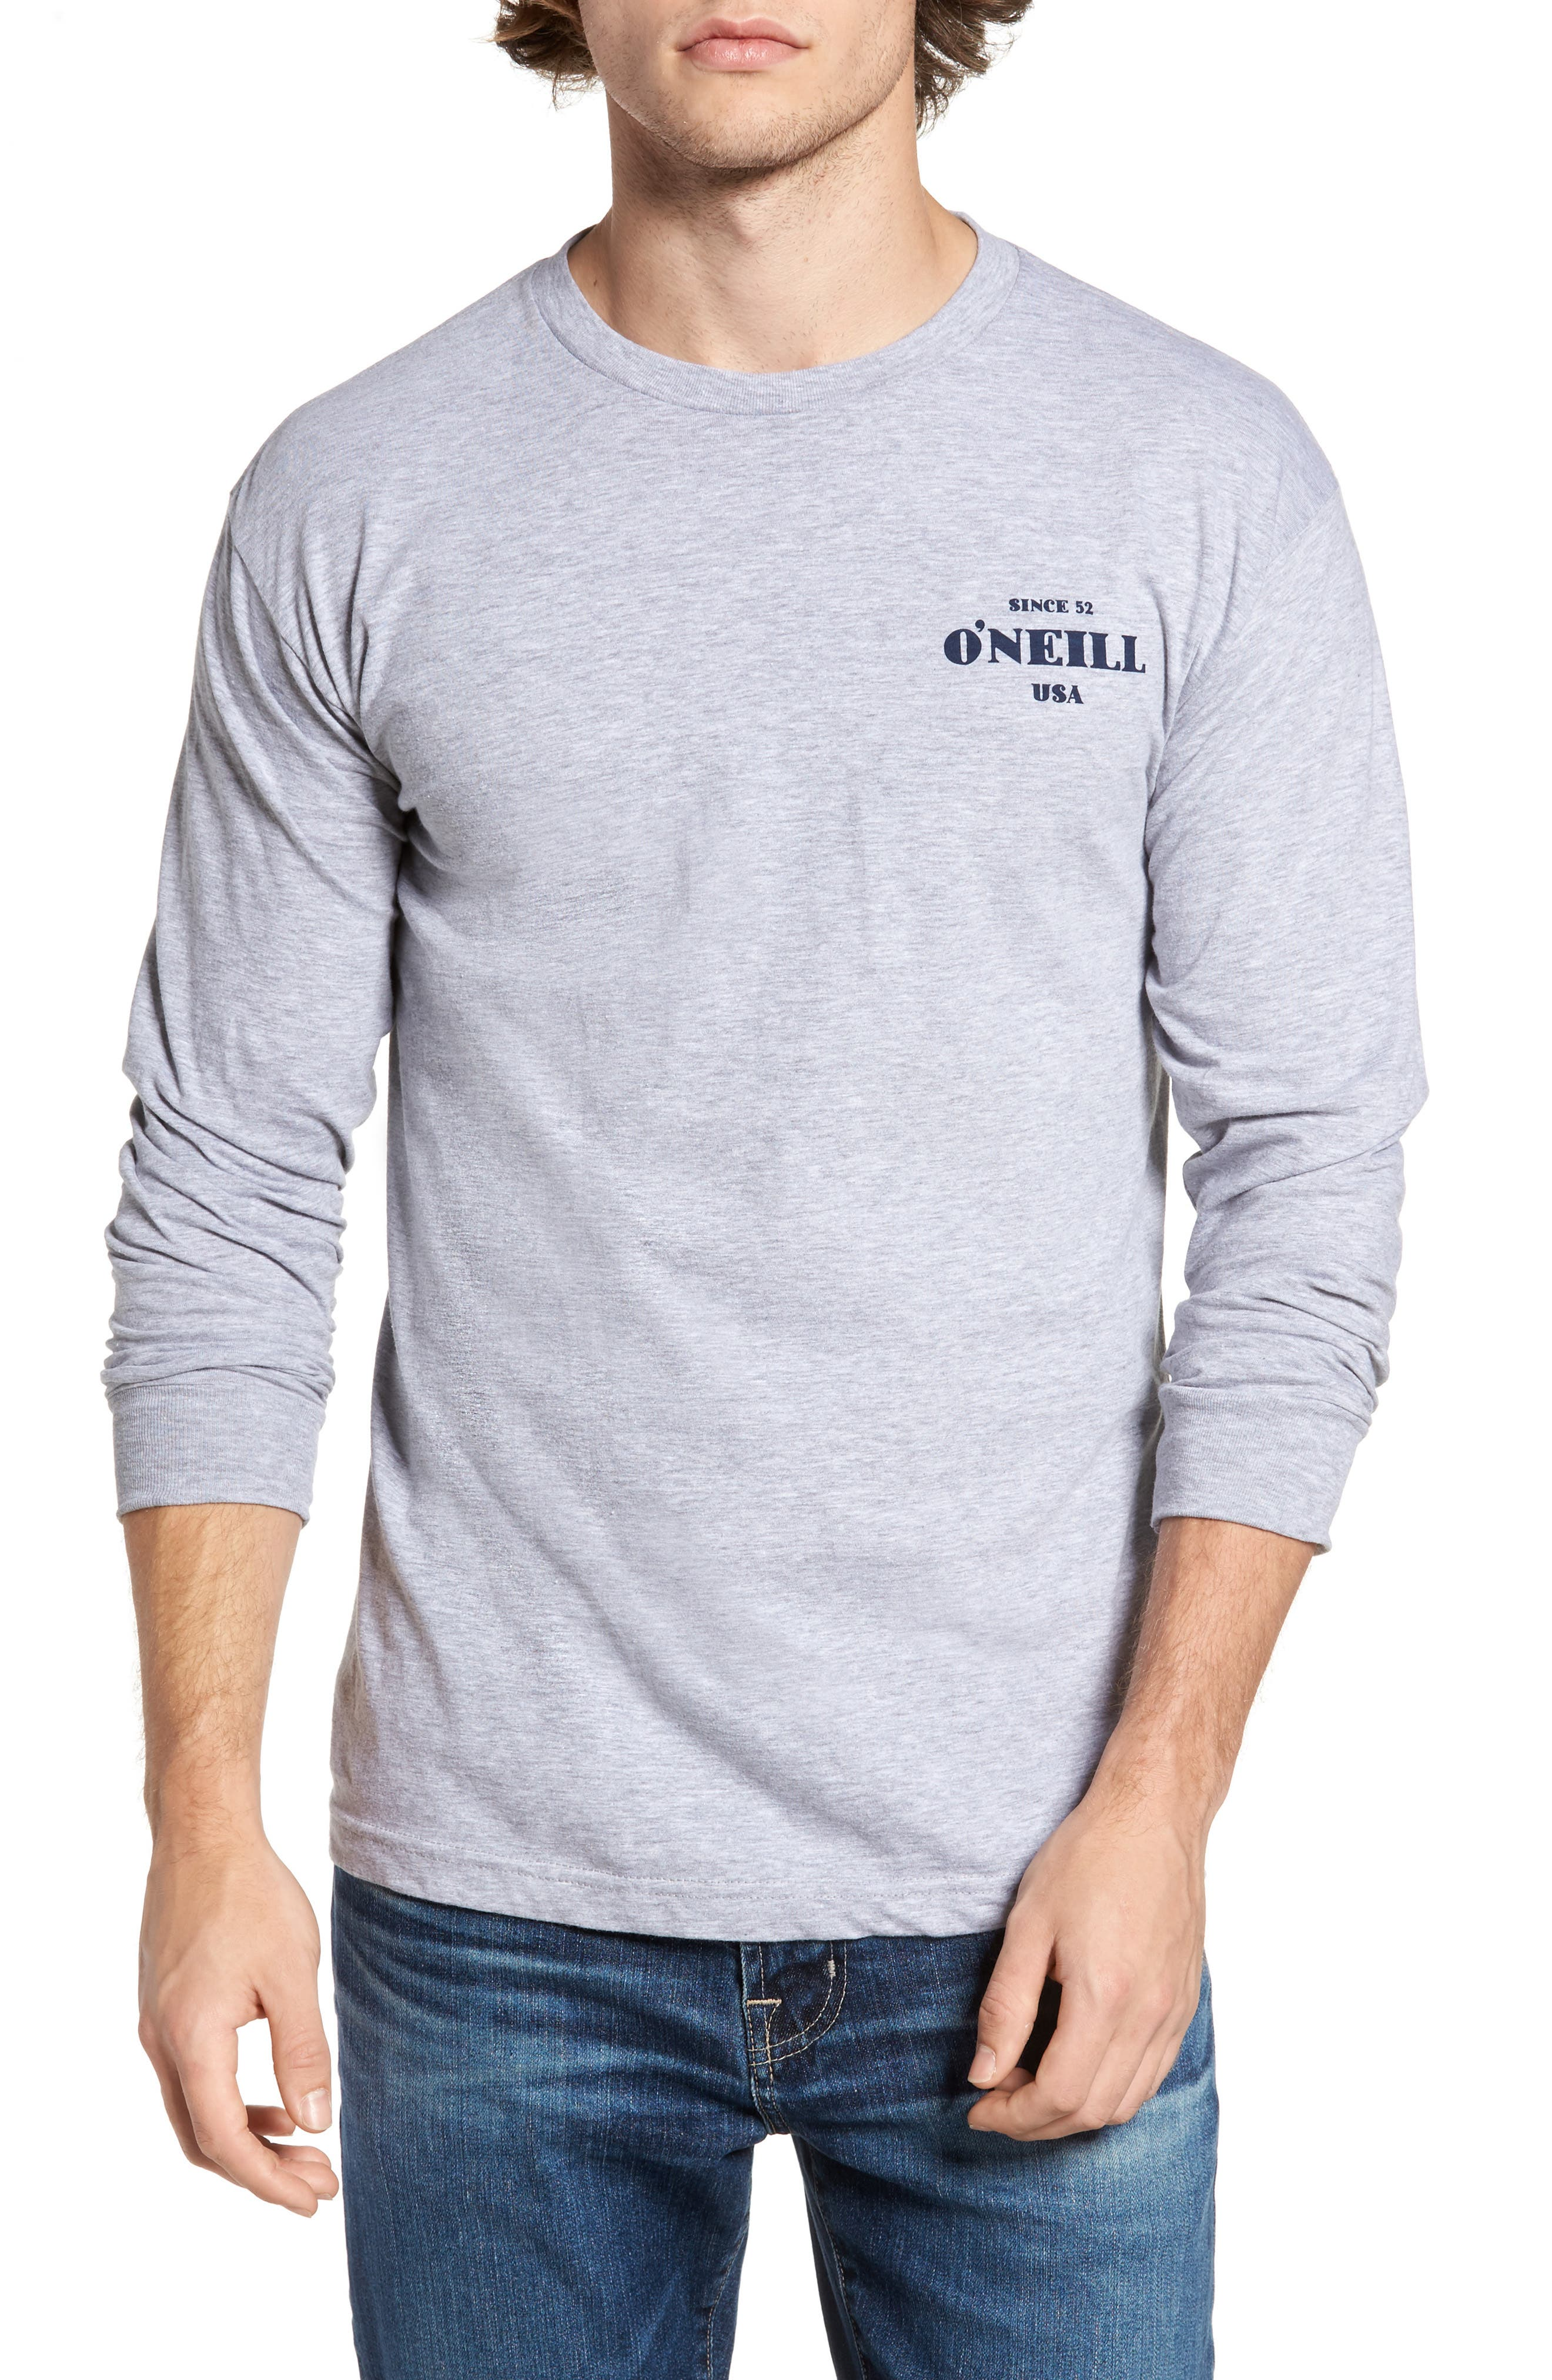 O'Neill Signage Graphic T-Shirt